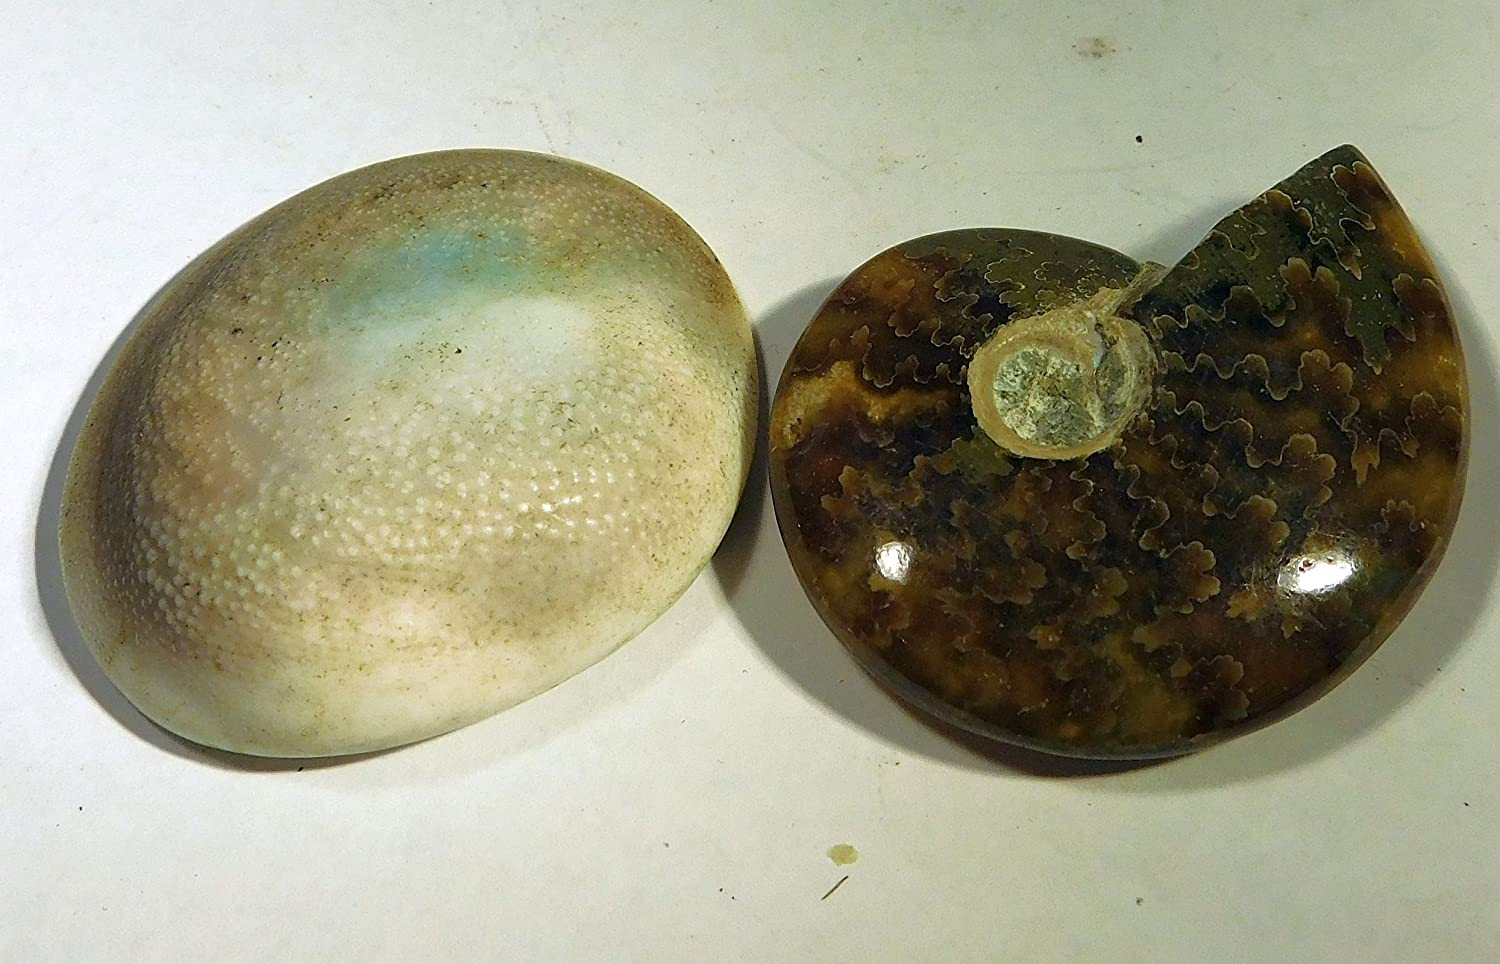 Britain-E-Spheres Crystal - 40mm x 31mm x 12mm (18g) Genuine Specimen Fossil Cleoniceras Ammonite and 41mm x 36mm x 11mm (21g) Conch Shell (Early Cretaceous Period - 120 Million Years) - ***SINGLE UNIQUE ITEM LISTING*** Britain-E-Spheres Crystal (UK)